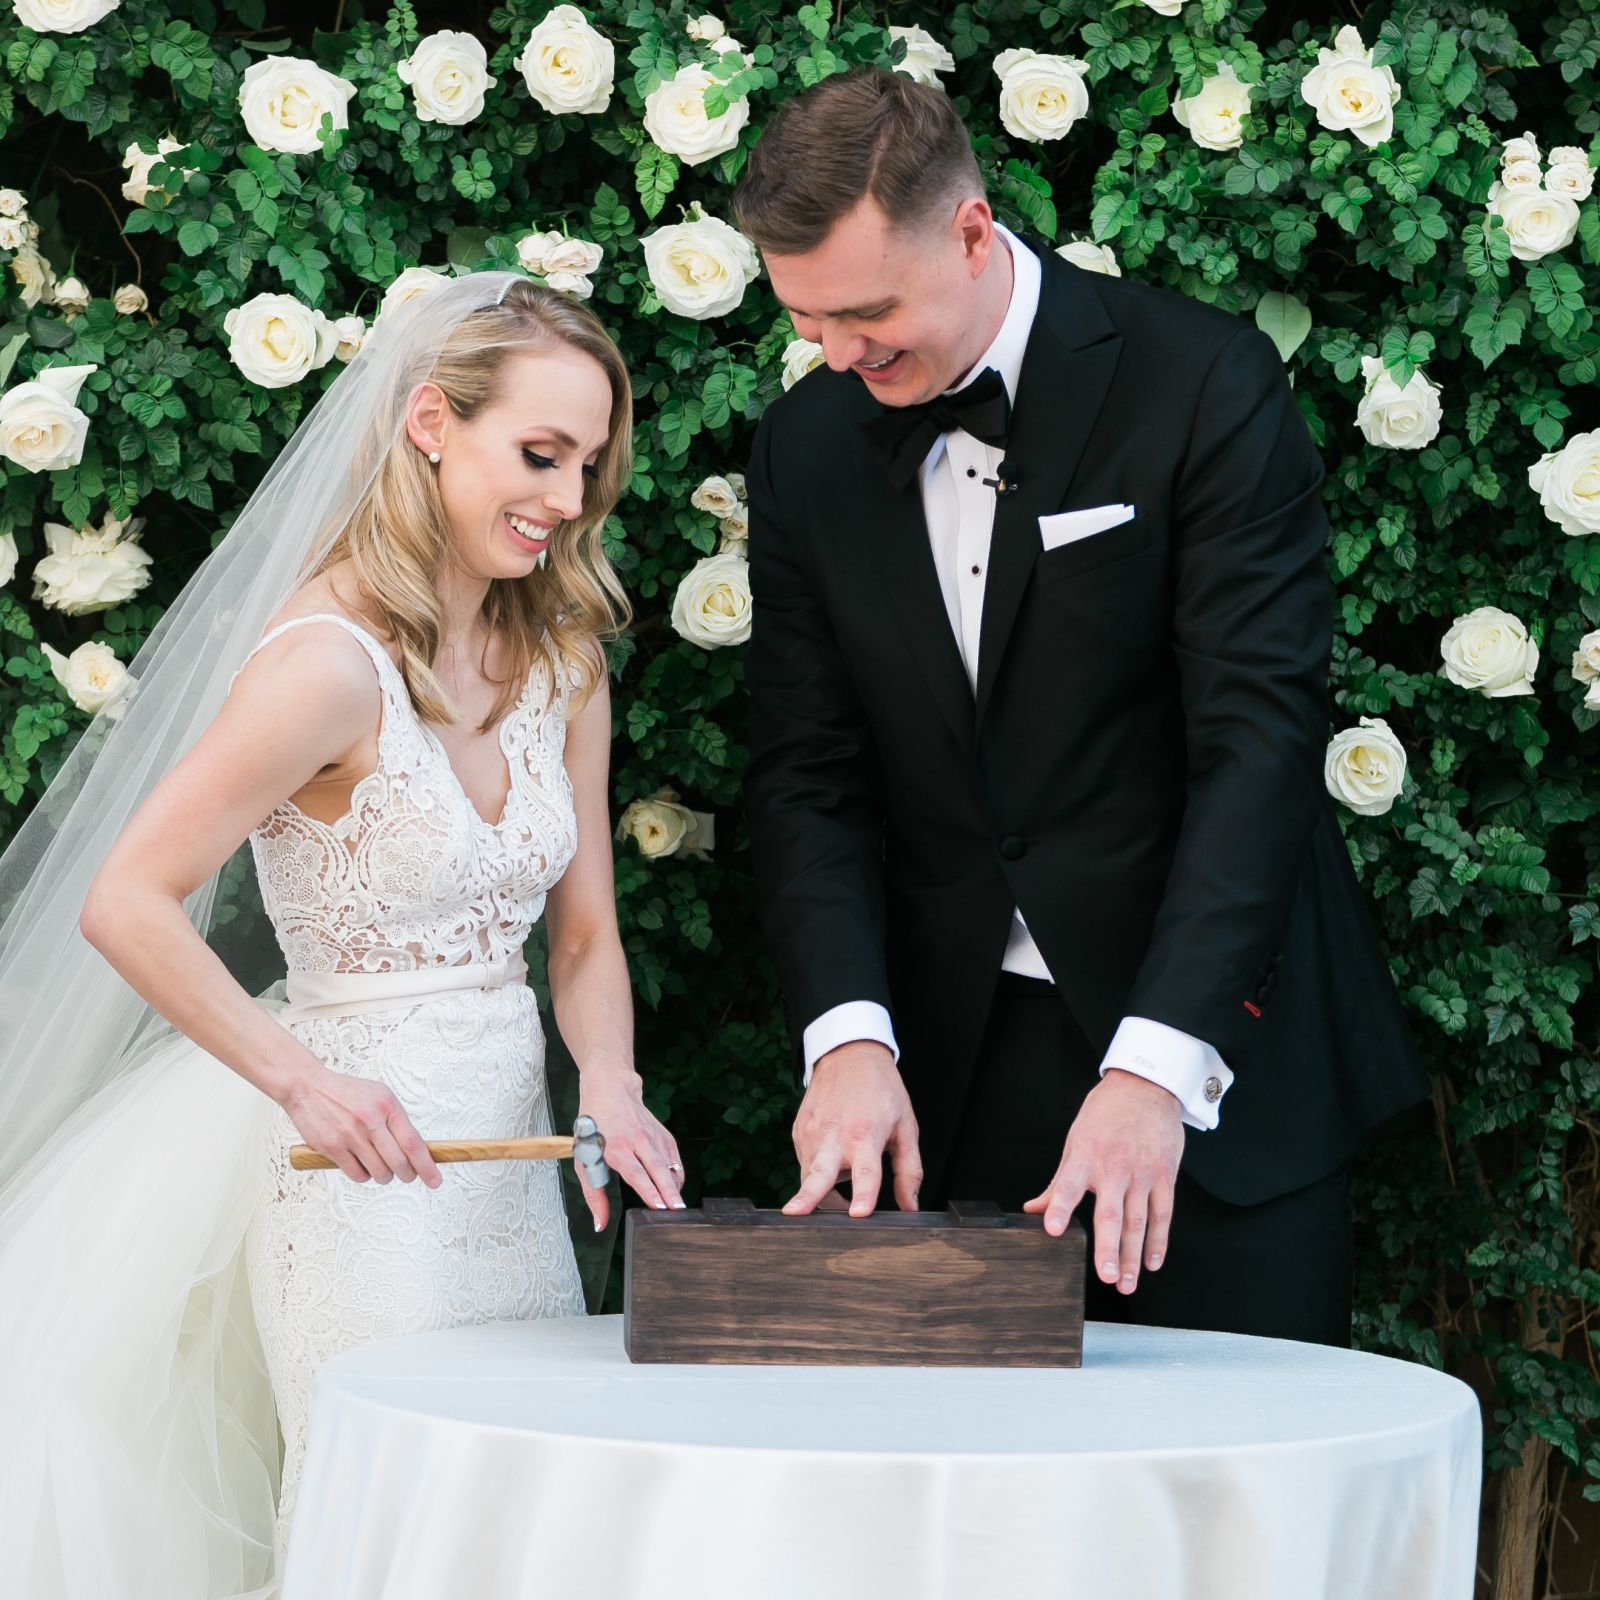 Las Vegas Wedding Officiant - Wine Box Ceremony